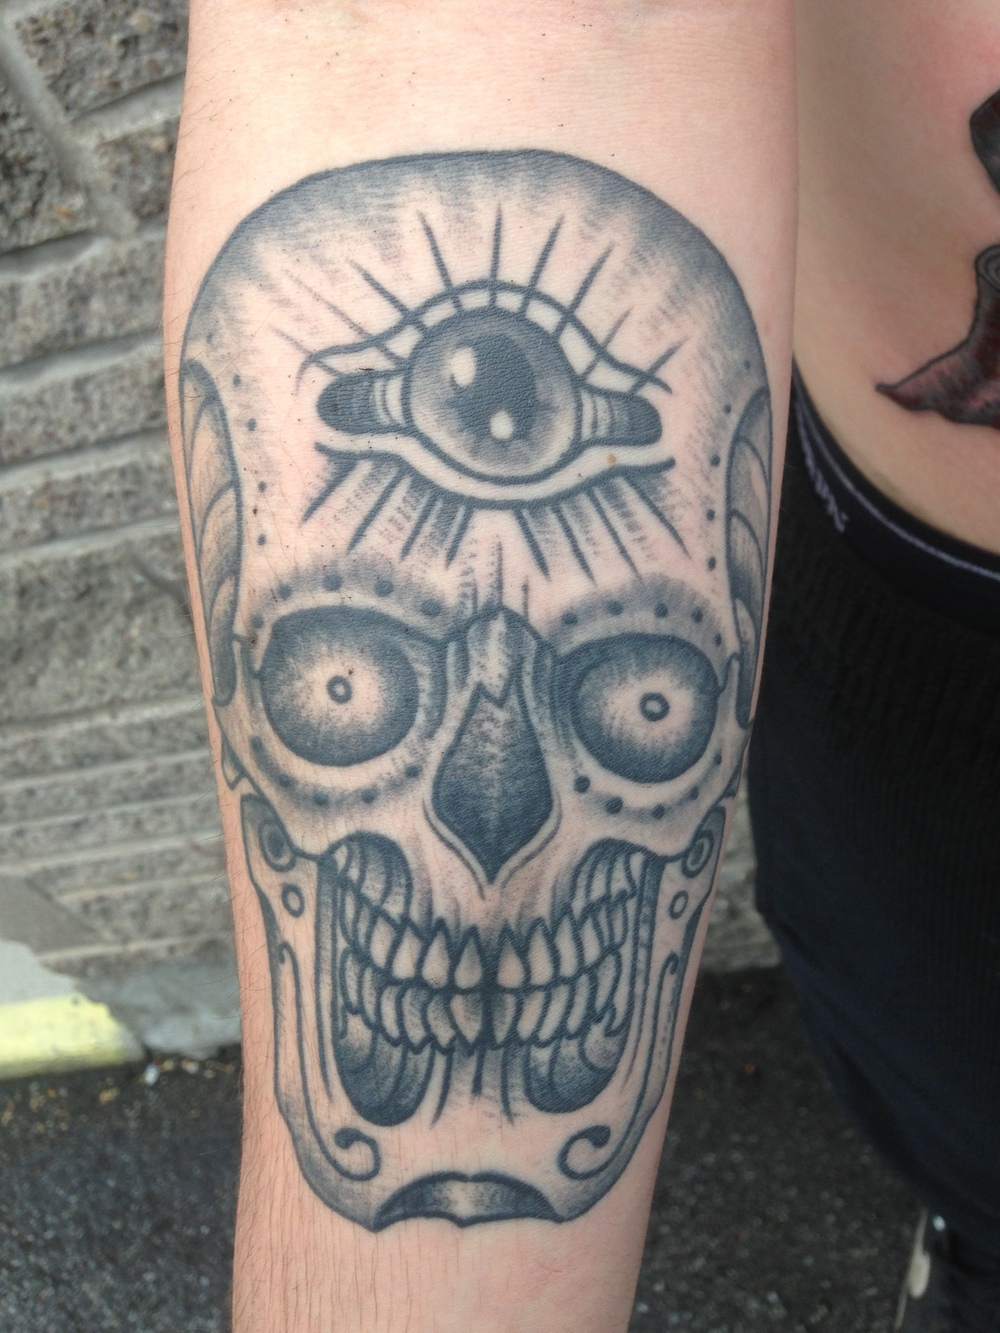 matt-lucci-tattoo-skull-with-third-eye-tattoo.JPG